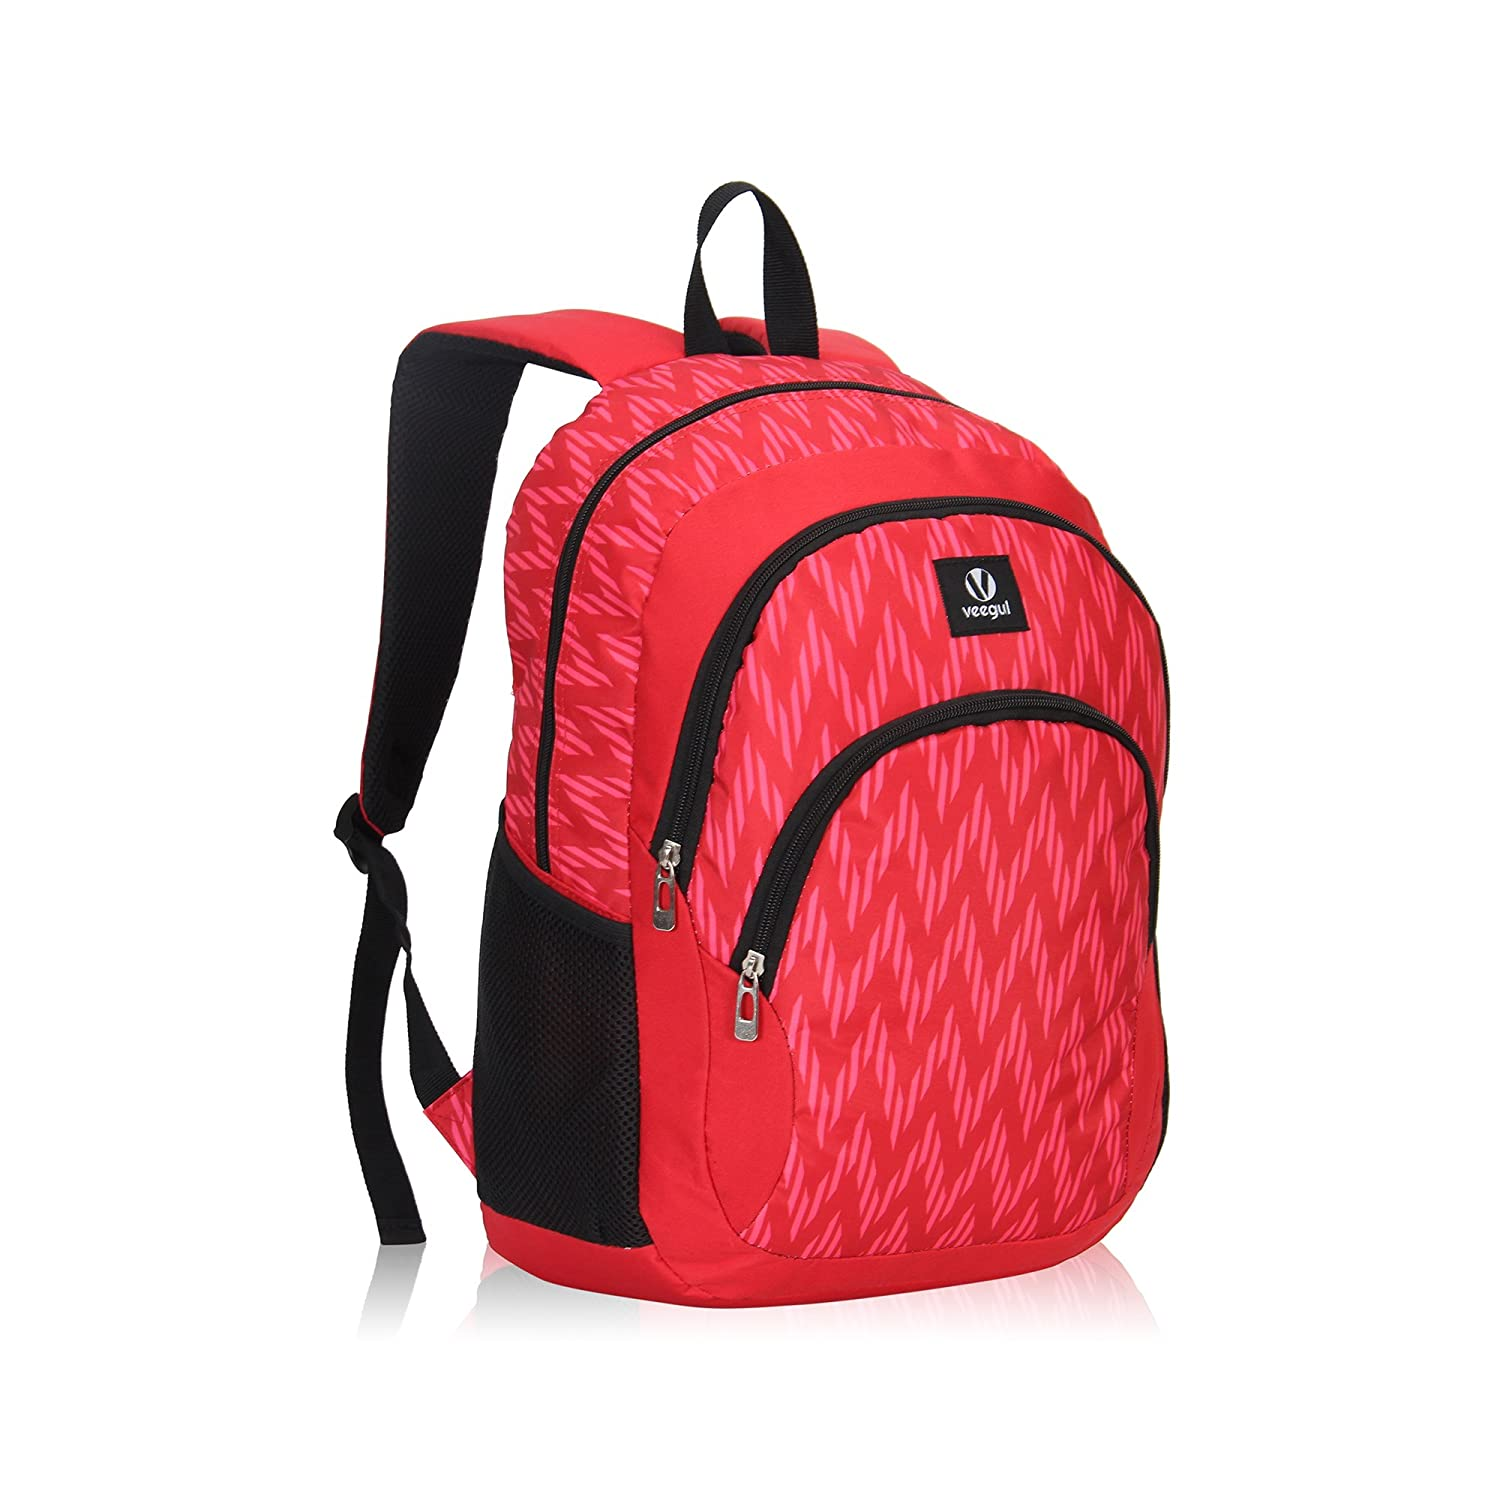 Veegul Cool Backpack Kids Sturdy Schoolbags Back to School Backpack for Boys Girls,Apricot